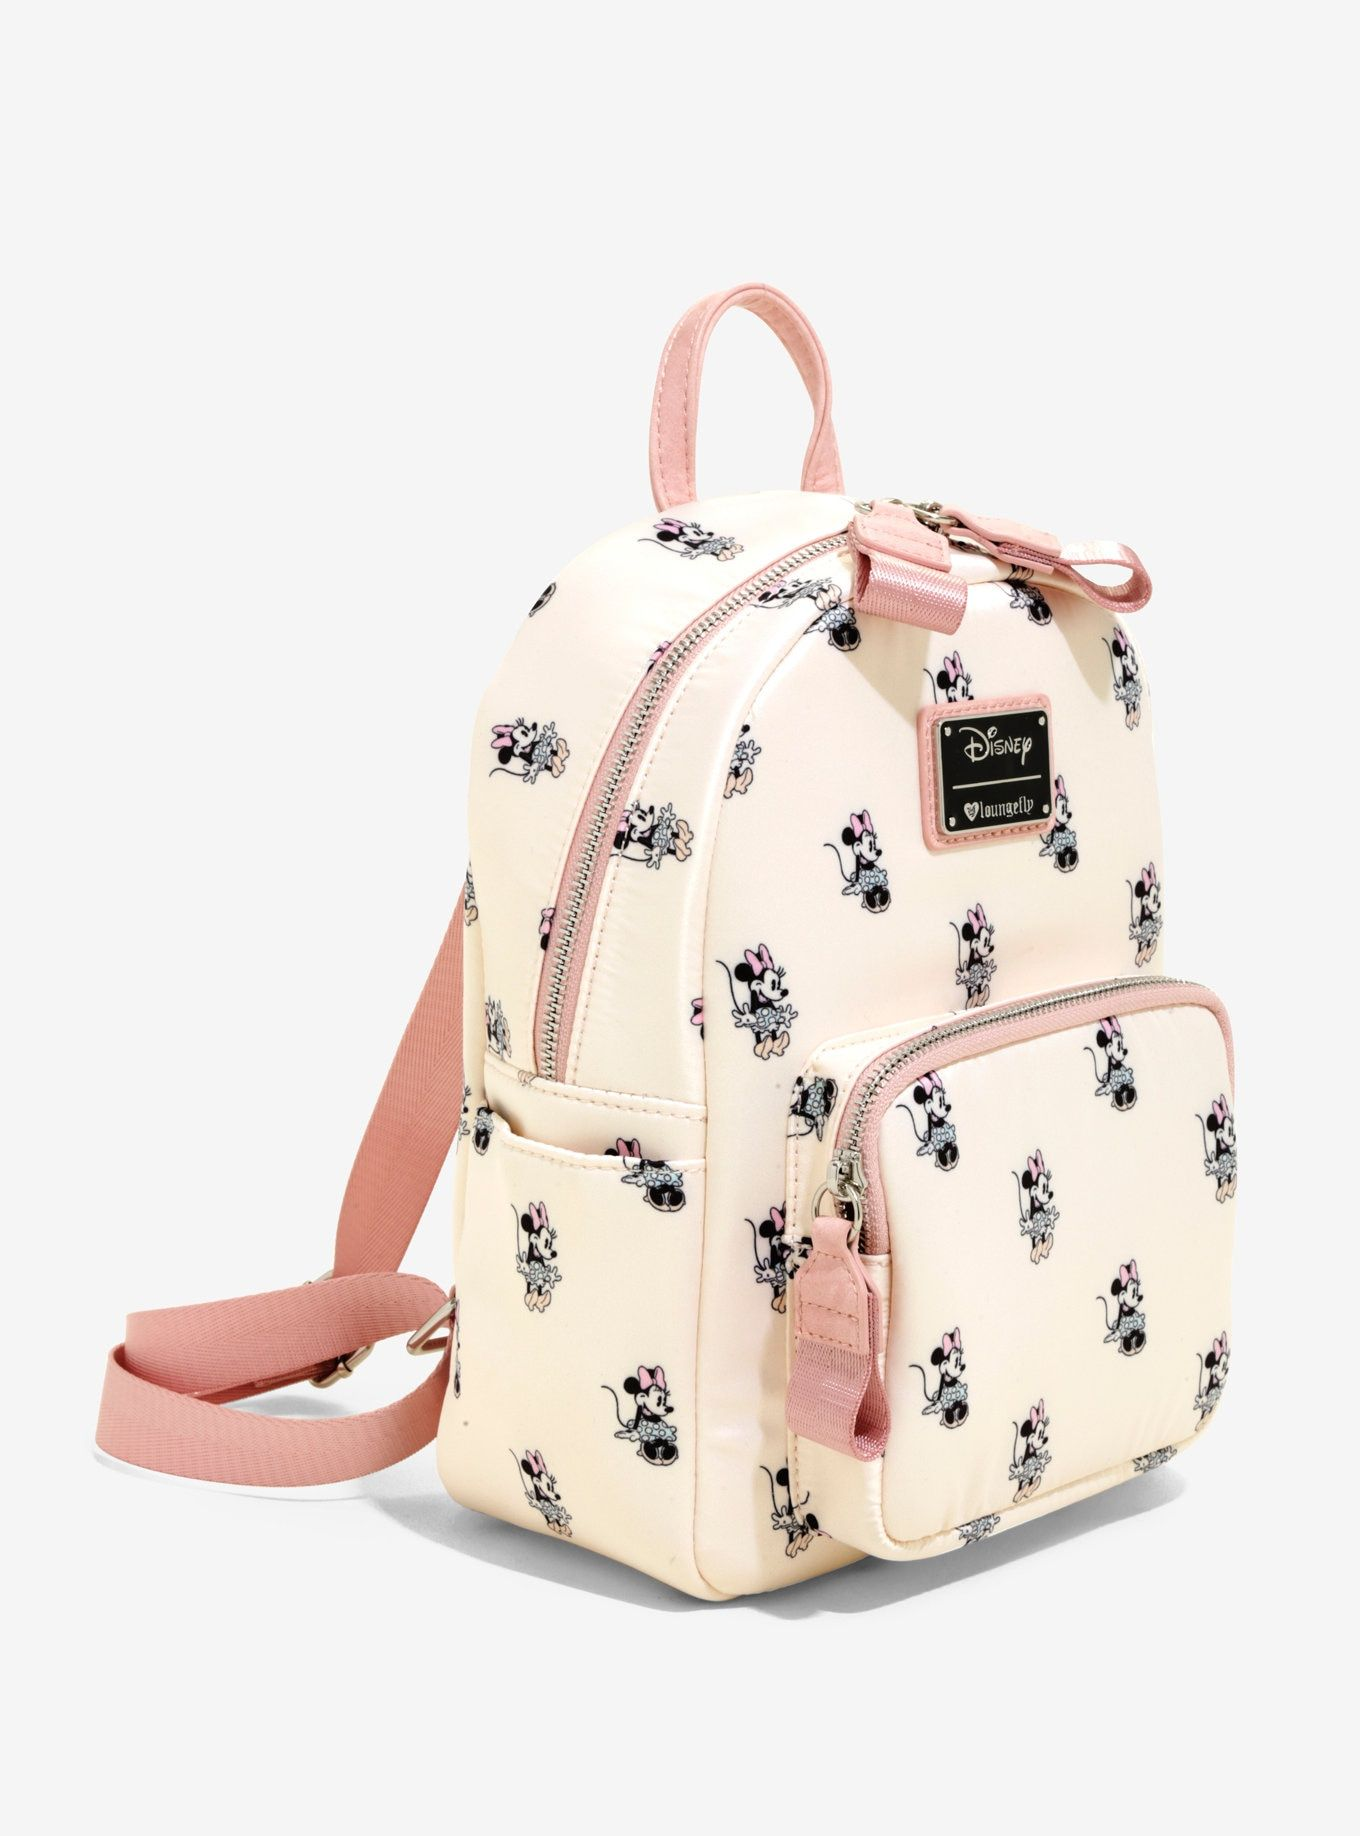 35f5c5a820 Loungefly Disney Minnie Mouse Satin Mini Backpack in 2019